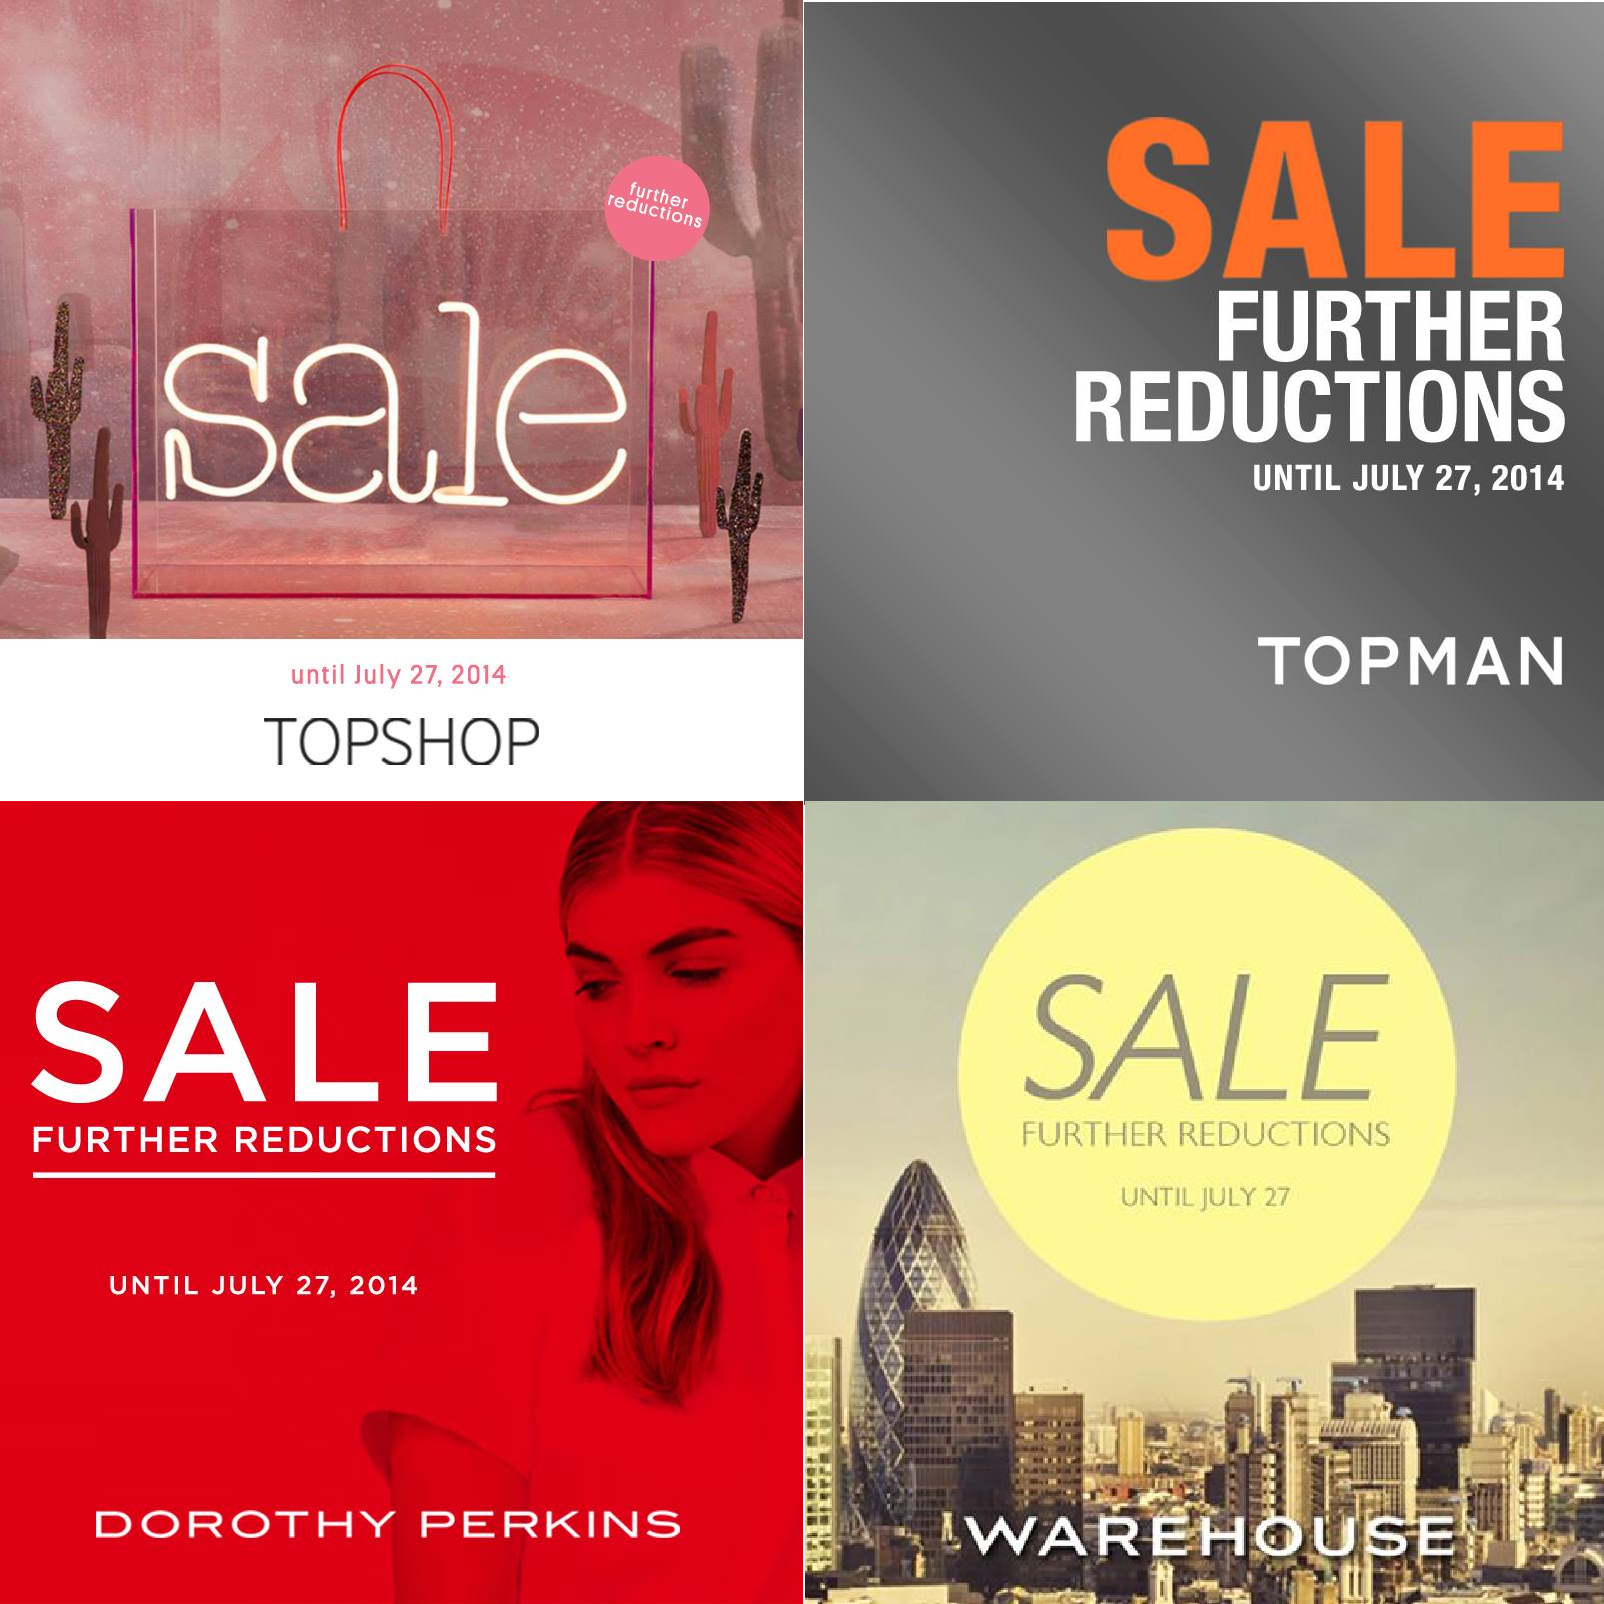 Topshop, Topman, Dorothy Perkins, Warehouse End of Season Sale - Further Reductions July 2014